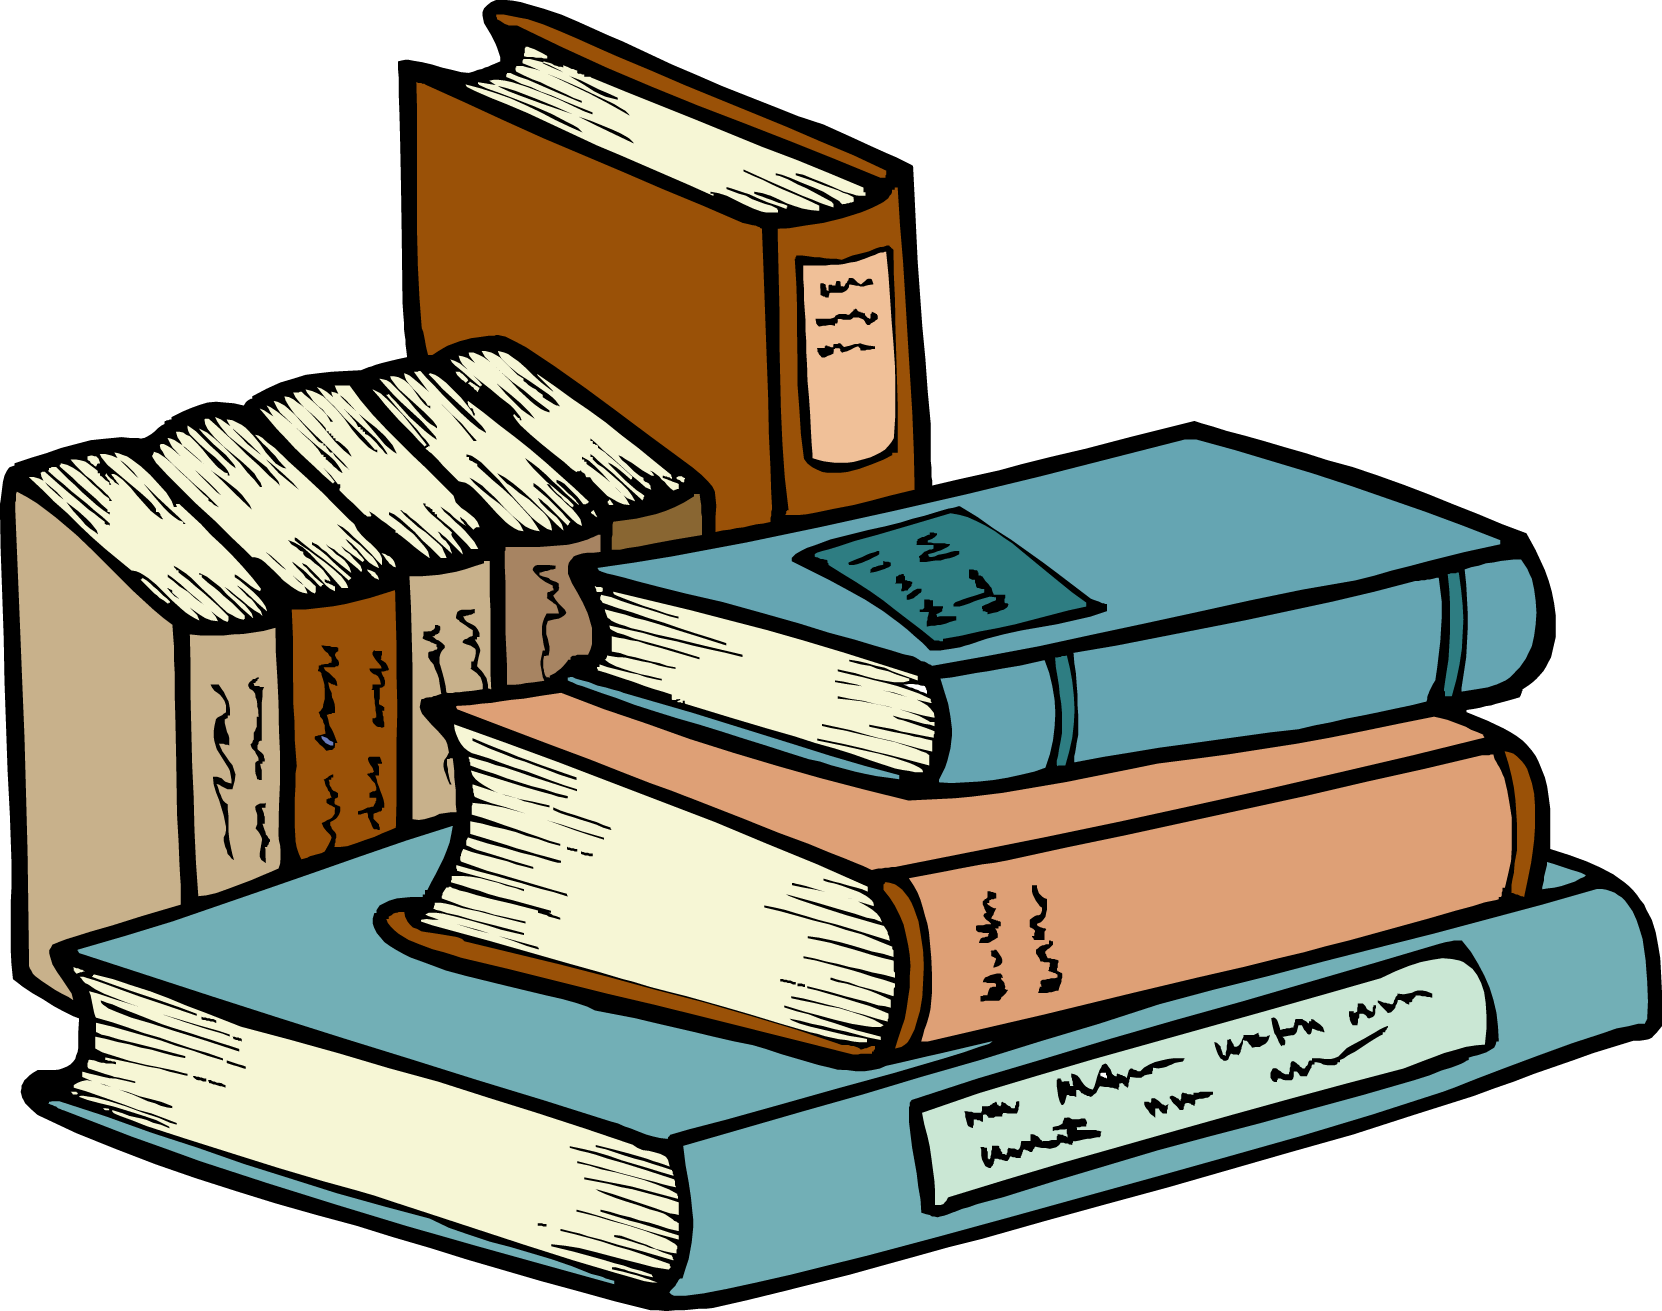 Book shelf clipart png freeuse Shelf Cliparts - Cliparts Zone png freeuse